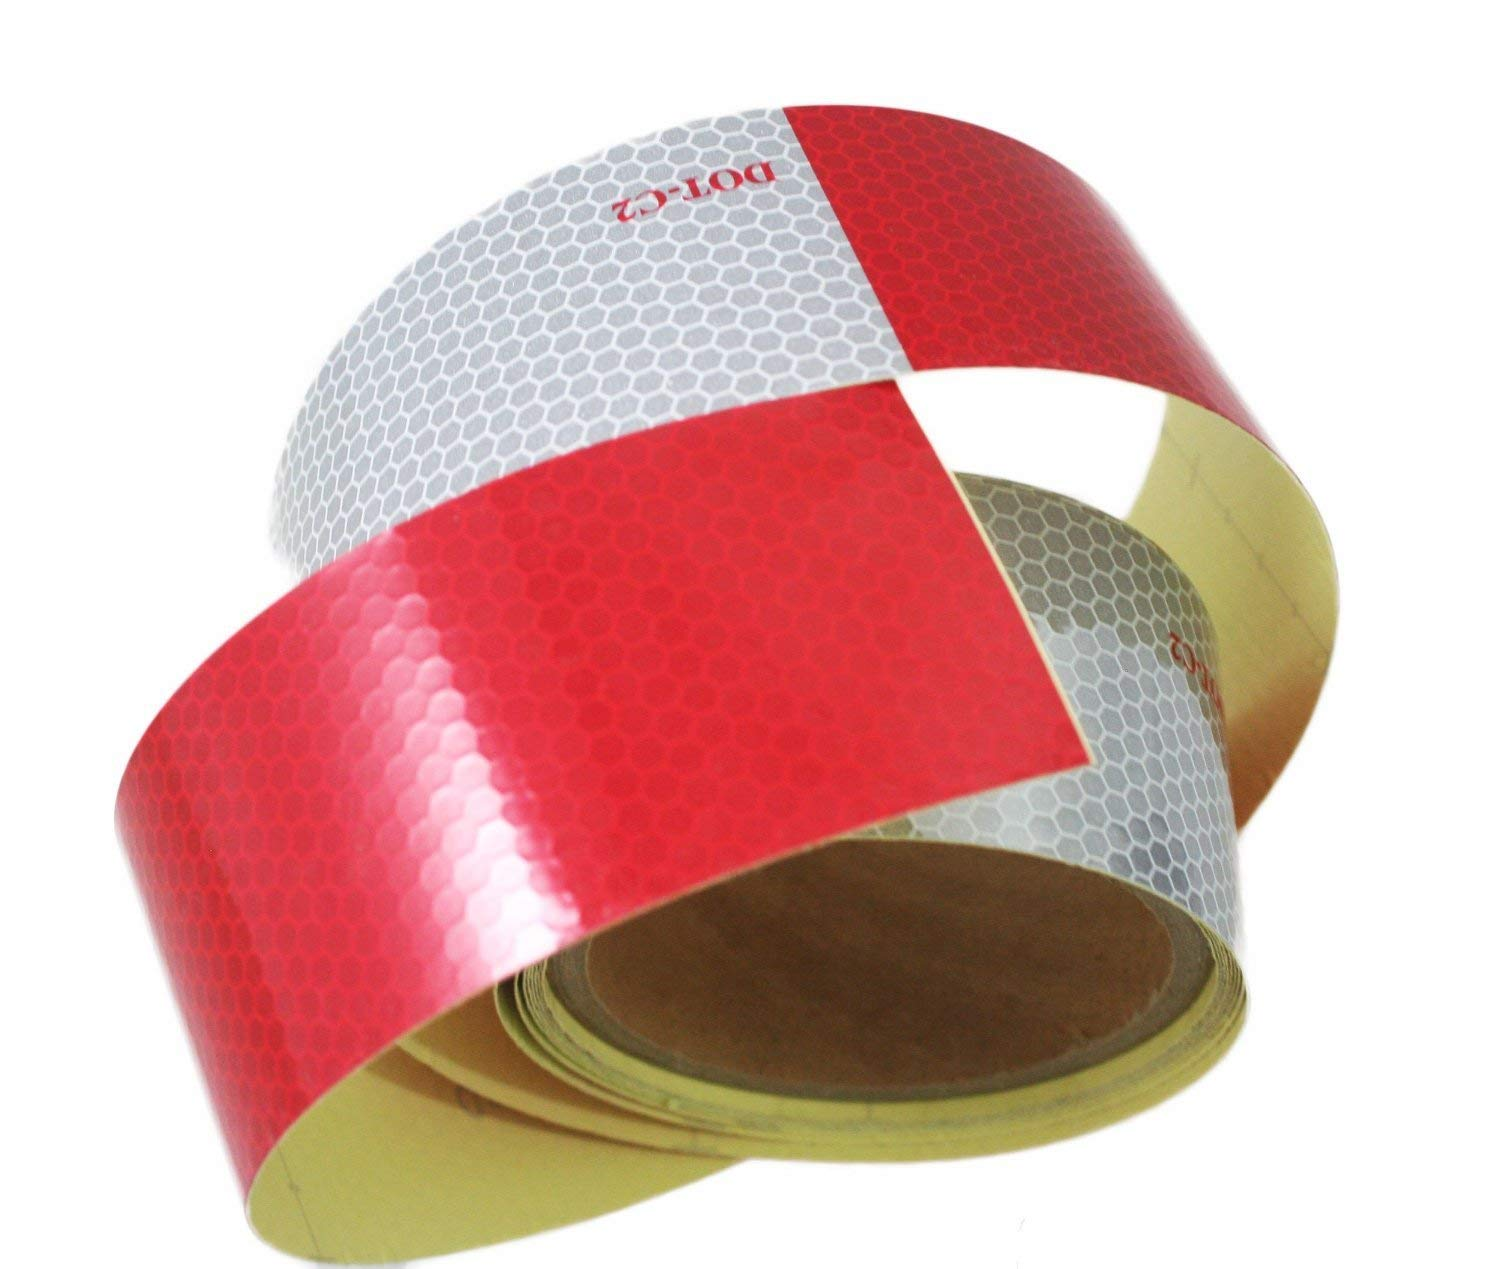 Reflective Tape Red And Silver Stripes 2 In X 30 Ft